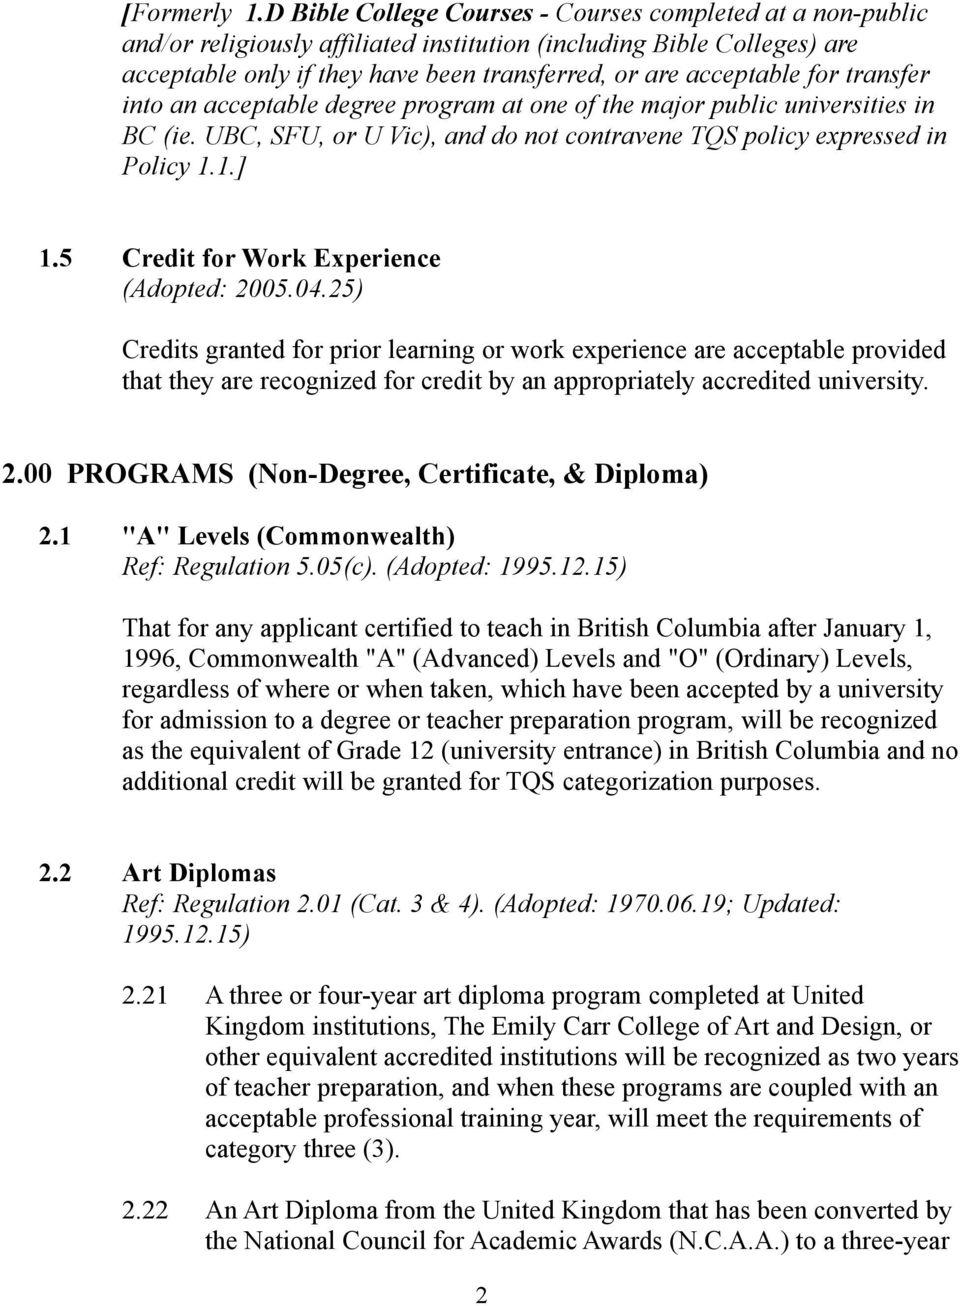 for transfer into an acceptable degree program at one of the major public universities in BC (ie. UBC, SFU, or U Vic), and do not contravene TQS policy expressed in Policy 1.1.] 1.